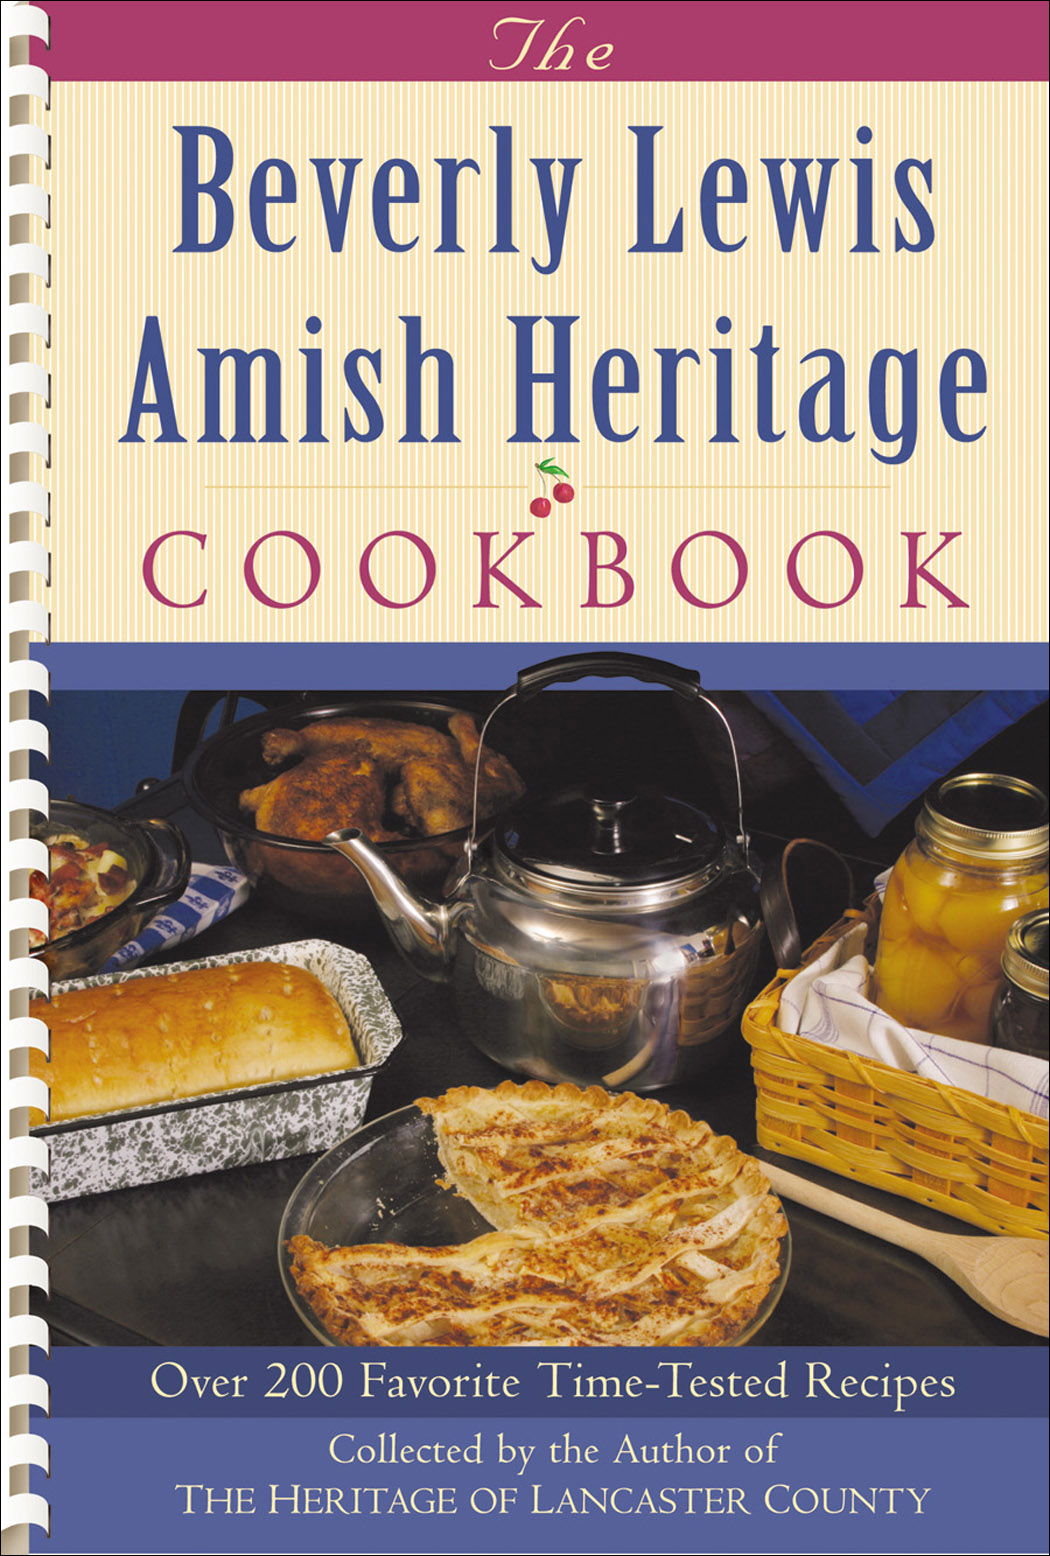 Beverly Lewis Amish Heritage Cookbook, The By: Beverly Lewis